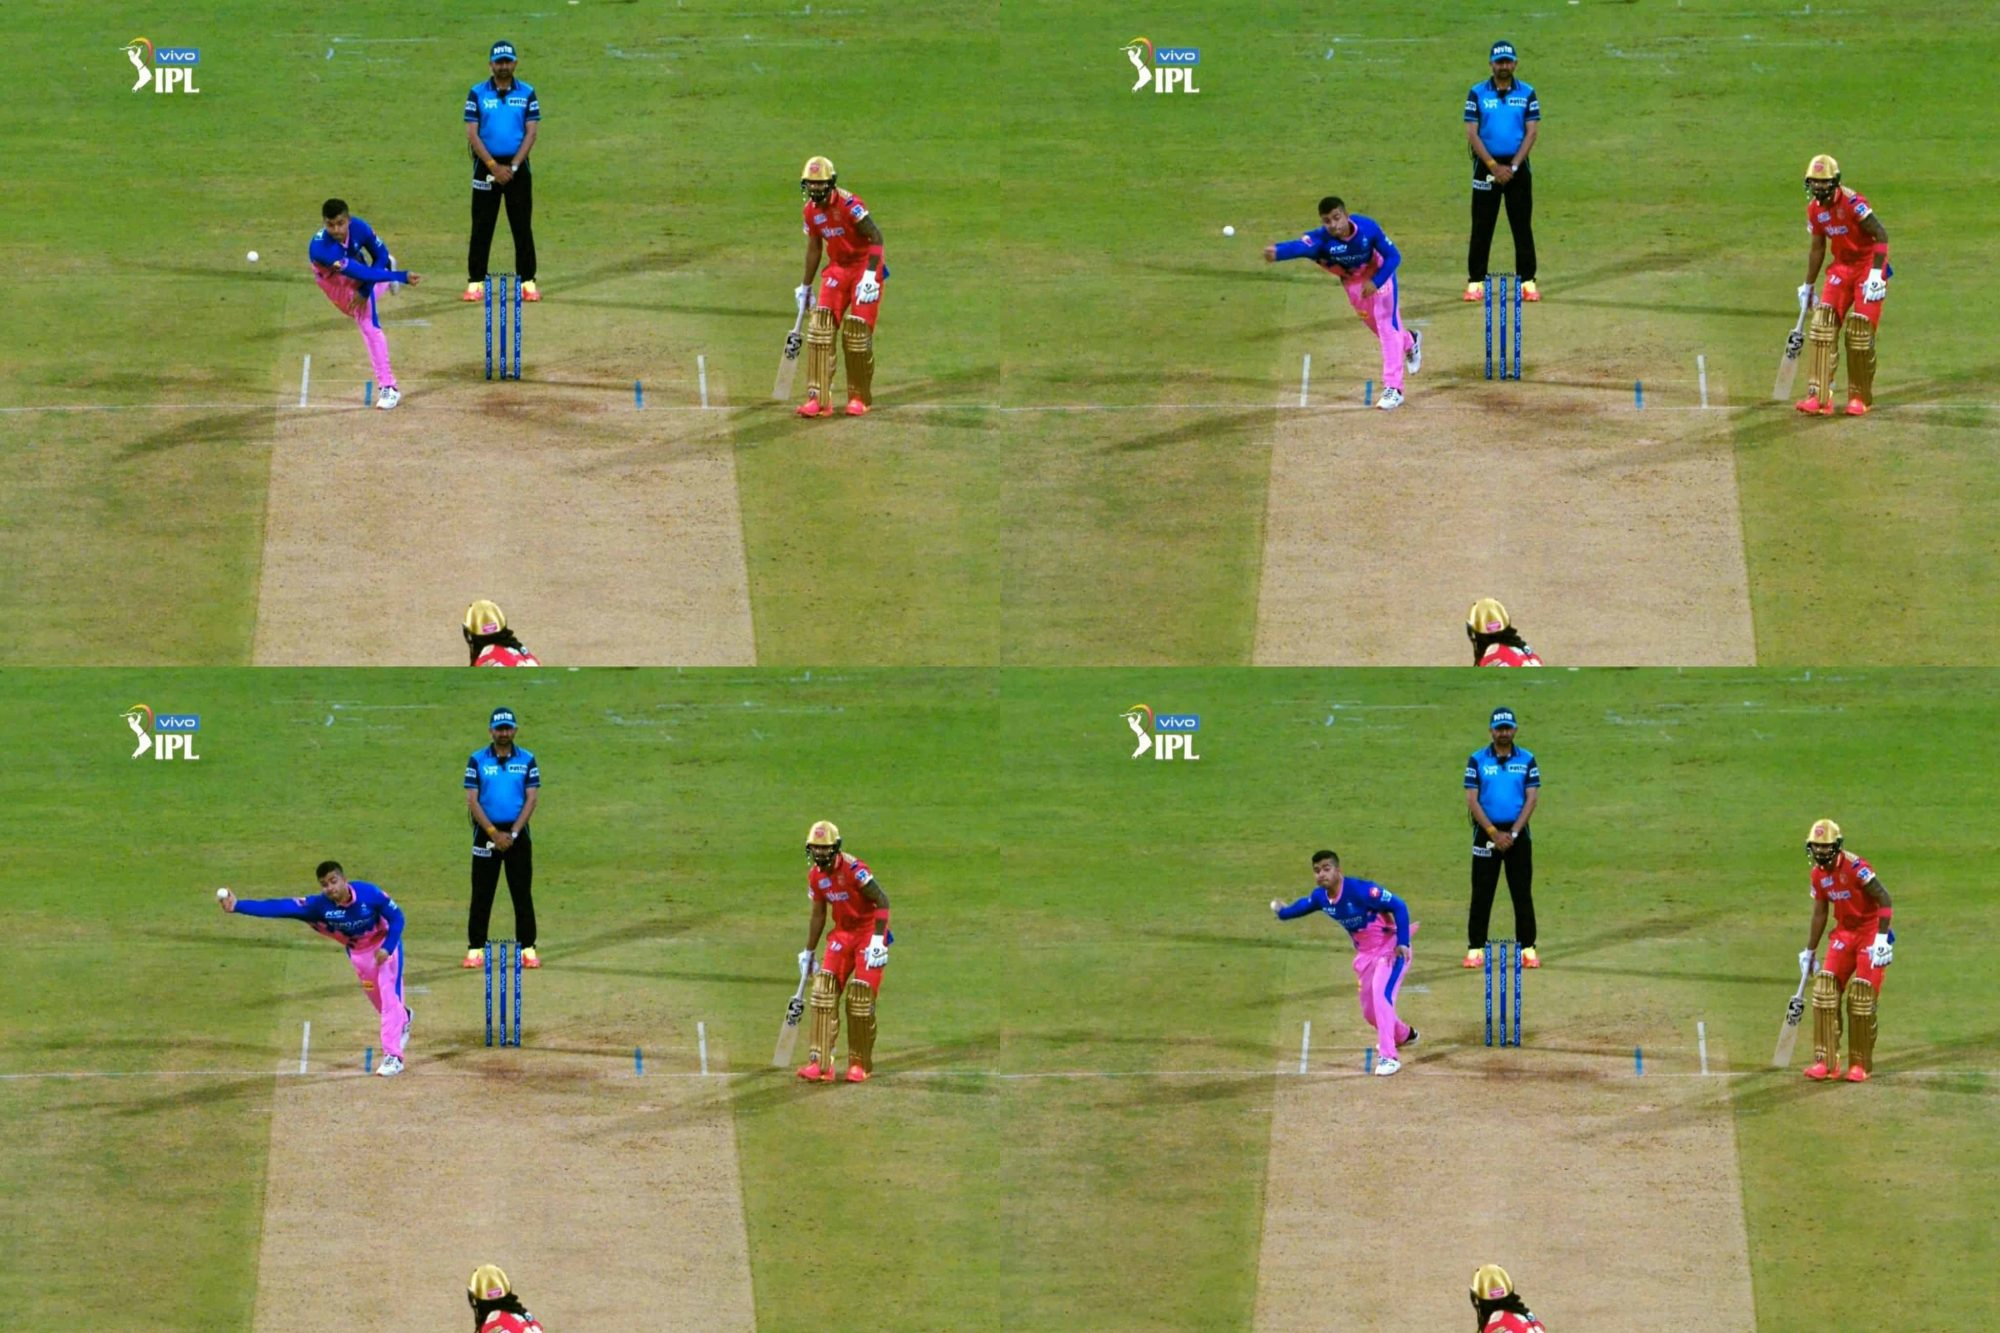 IPL 2021: Riyan Parag Bowls A Strange Side-Arm Delivery To Chris Gayle, Gets Warning From Umpire